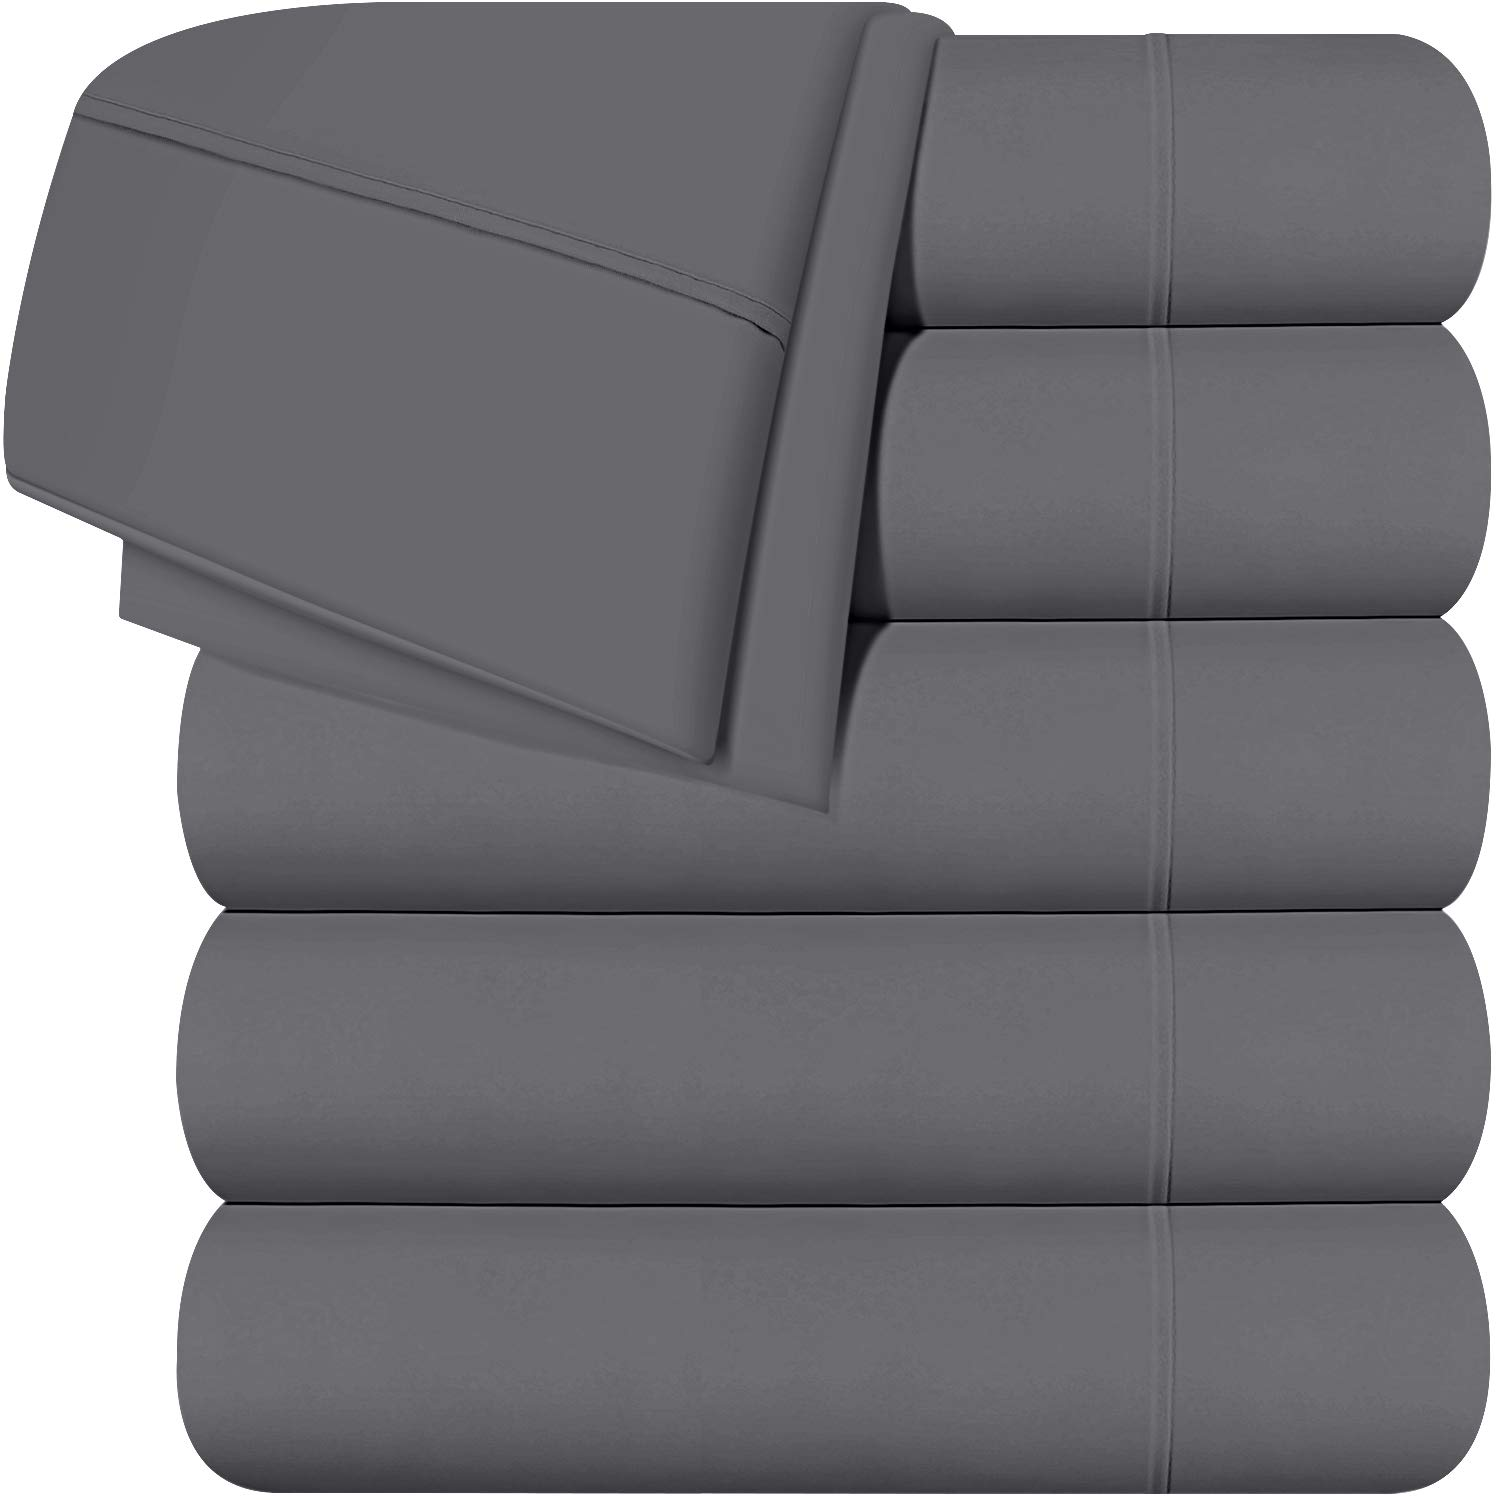 Utopia Bedding Twin Flat Sheets (Grey) Pack of 6